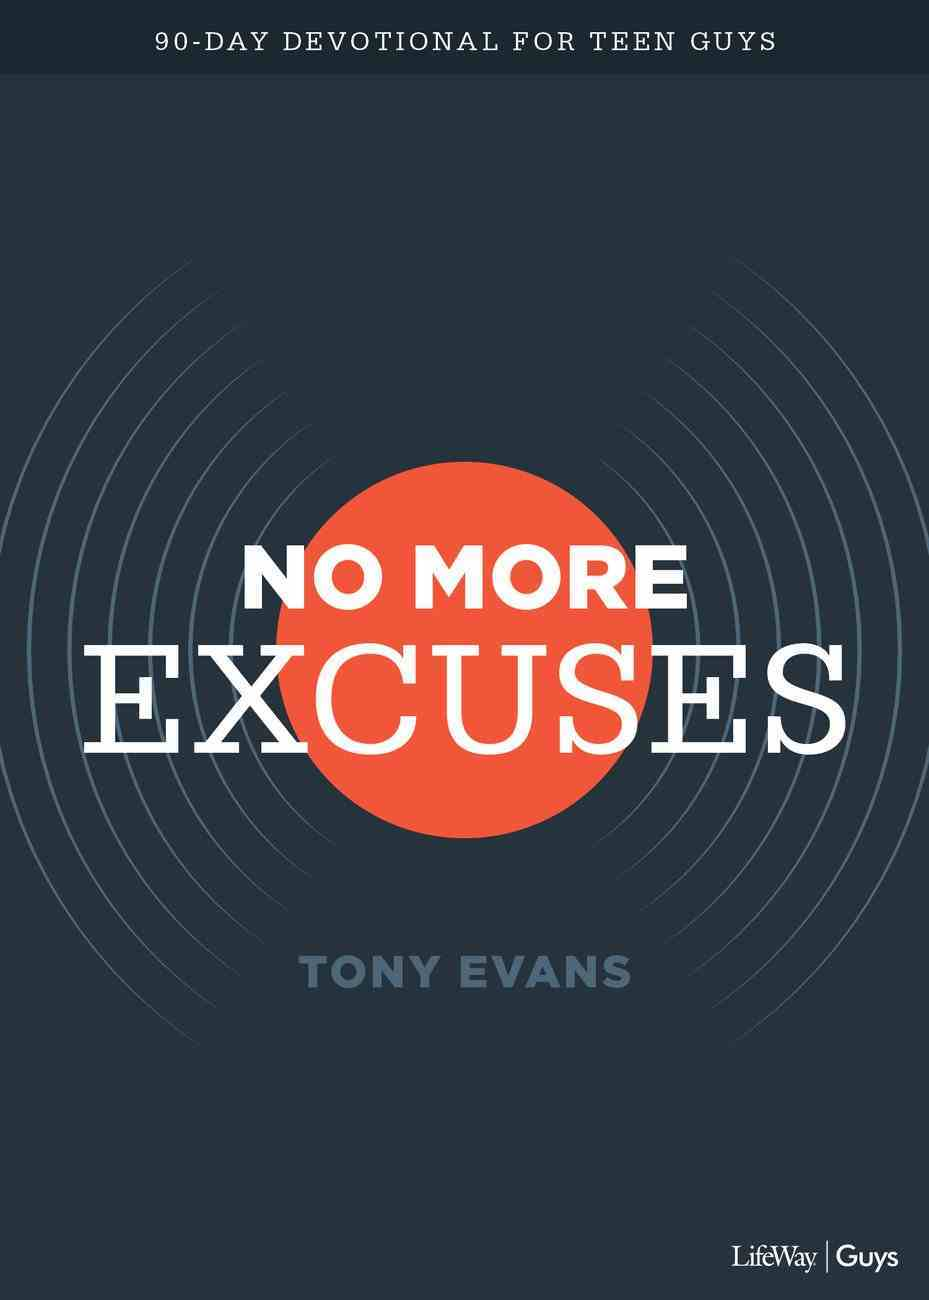 No More Excuses: A 90-Day Devotional For Teen Guys Imitation Leather